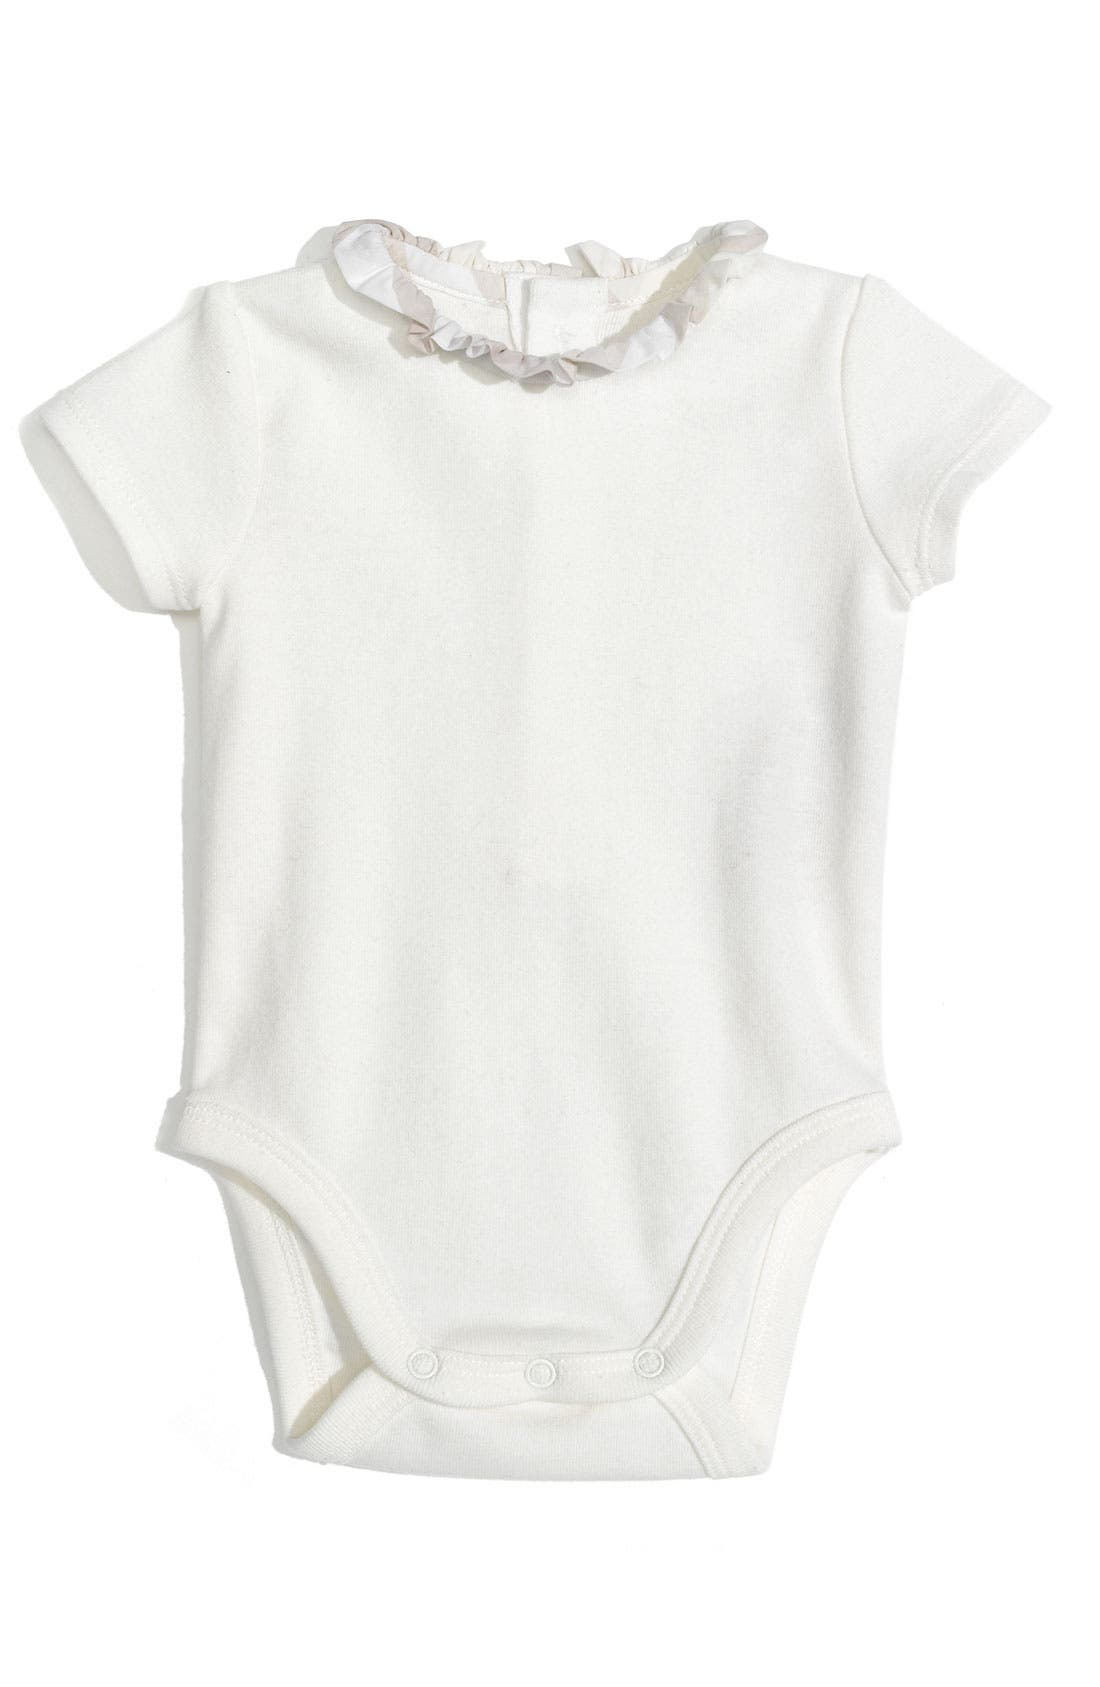 Alternate Image 1 Selected - Burberry 'Audrey' Ruffle Collar Bodysuit (Infant)